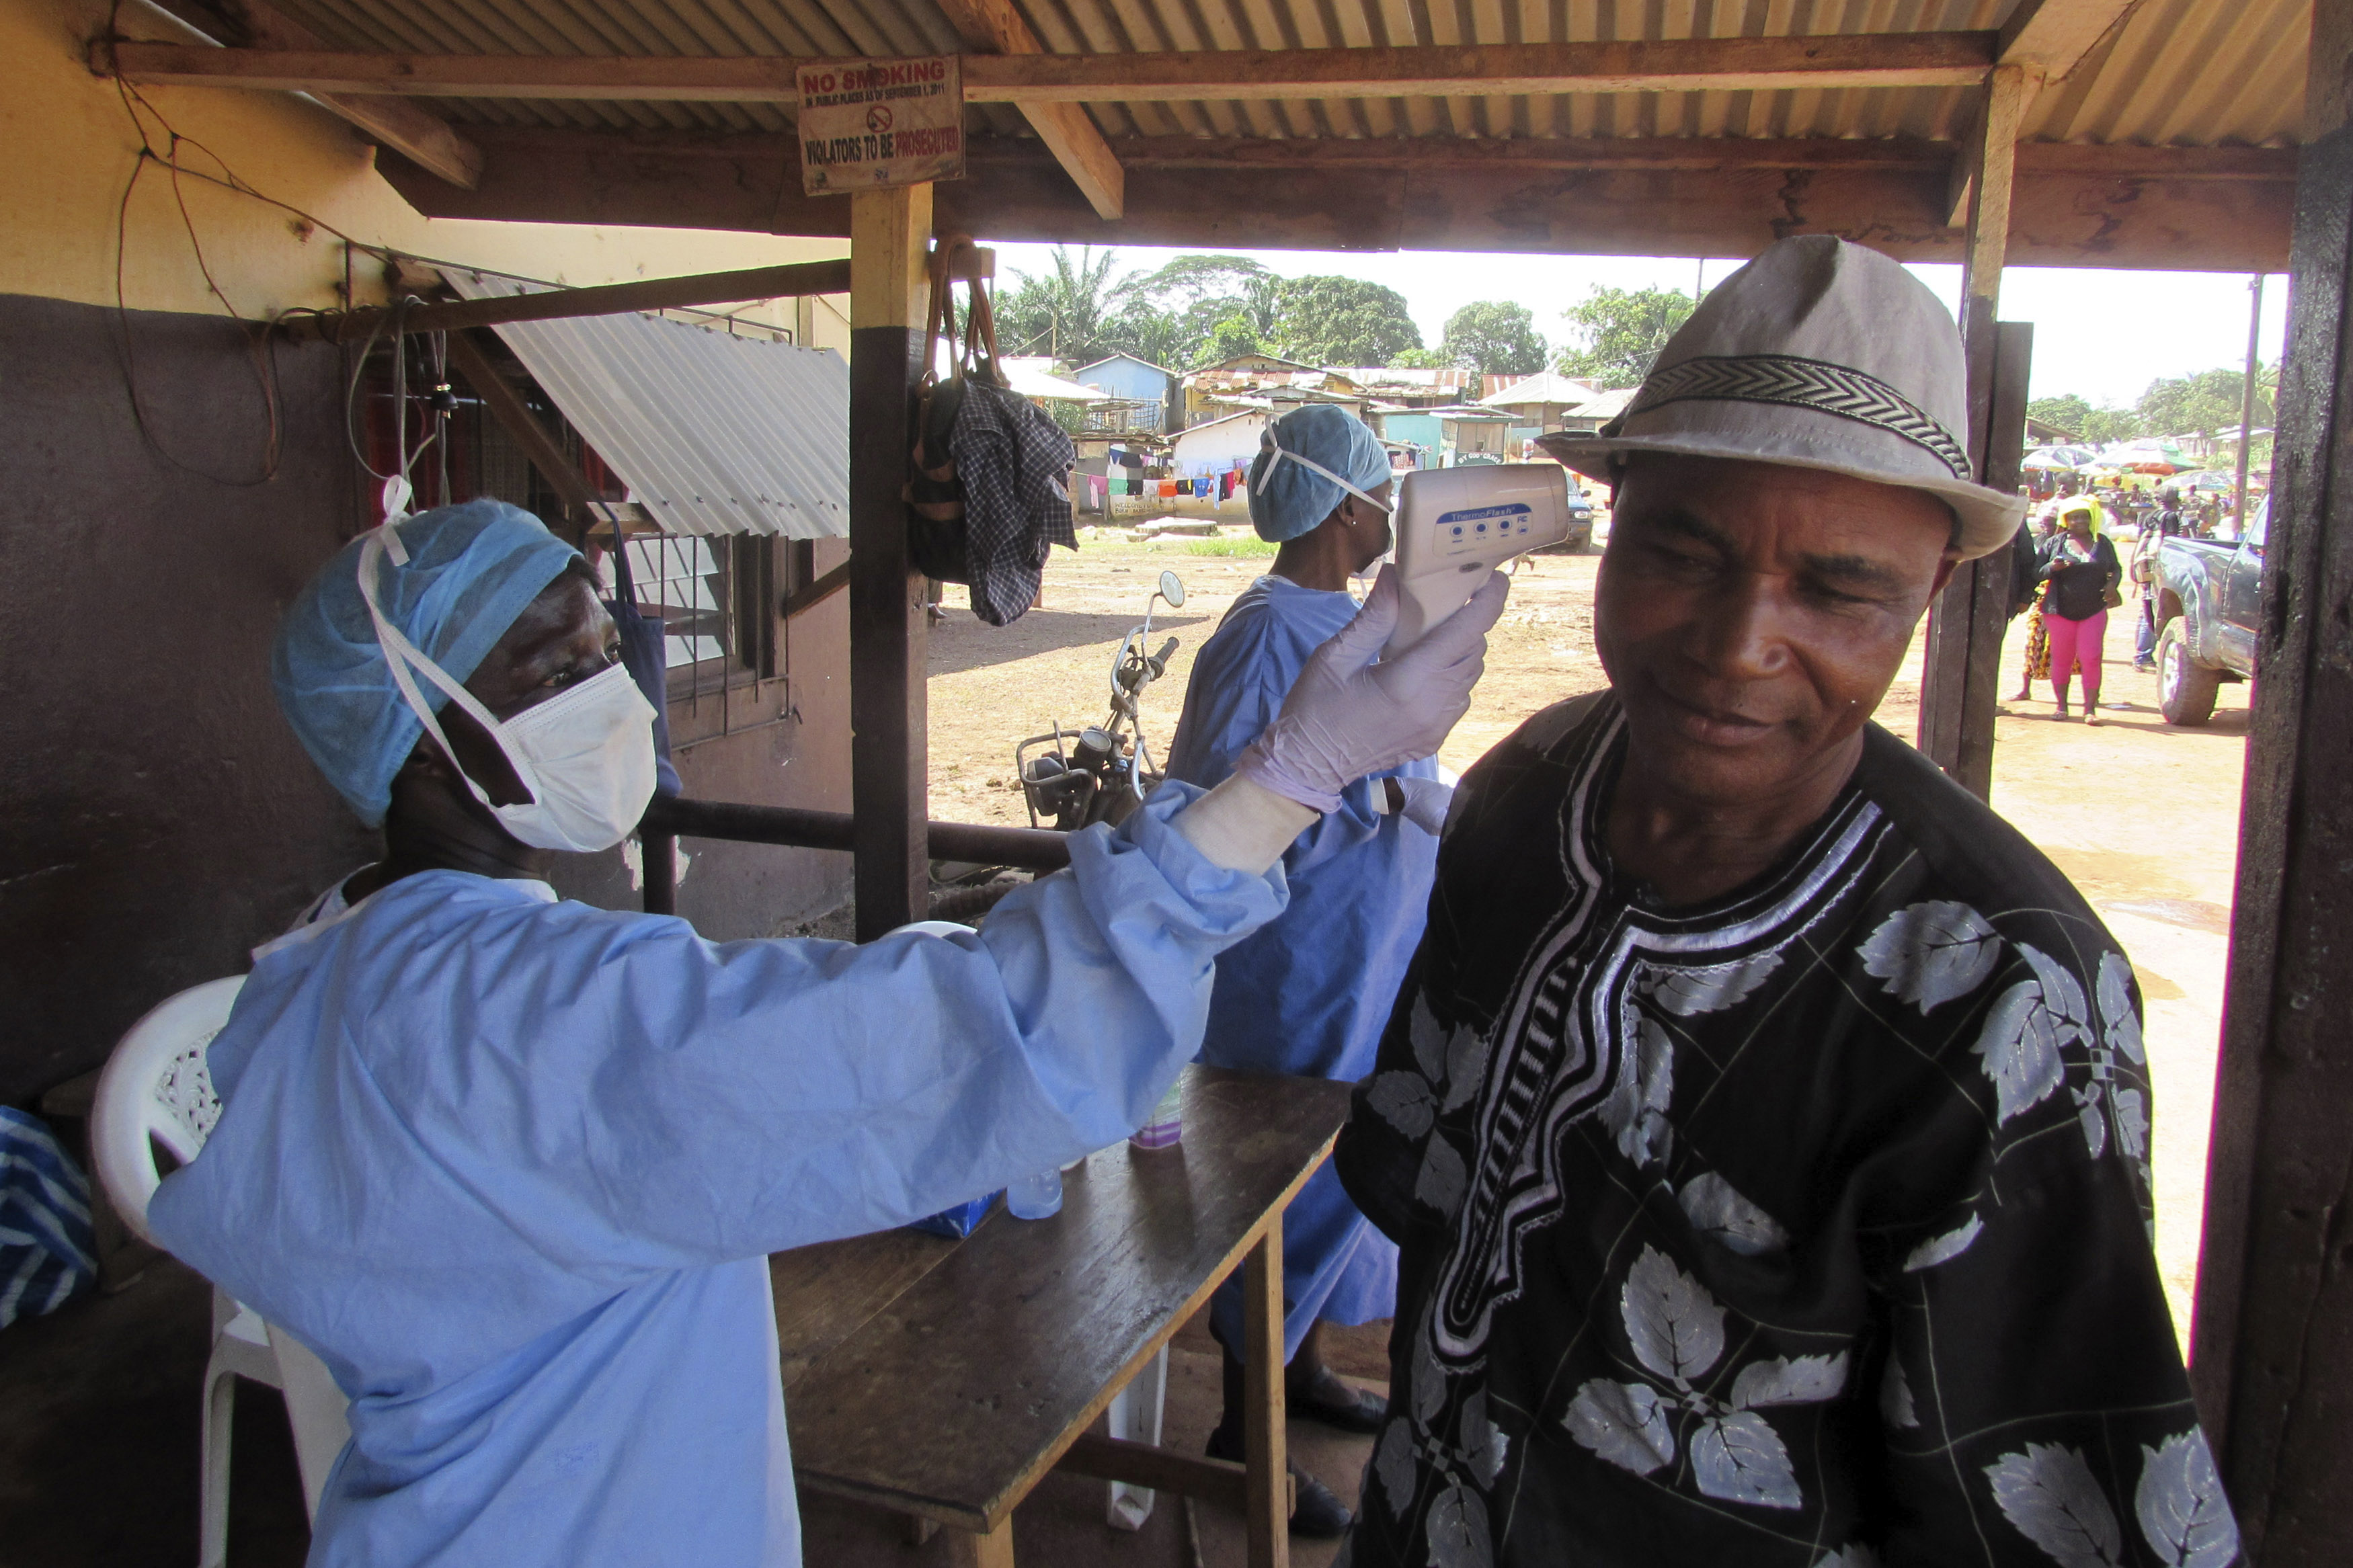 A health worker checks the temperature of a man at a roadside medical checkpoint outside Ganta, Liberia.